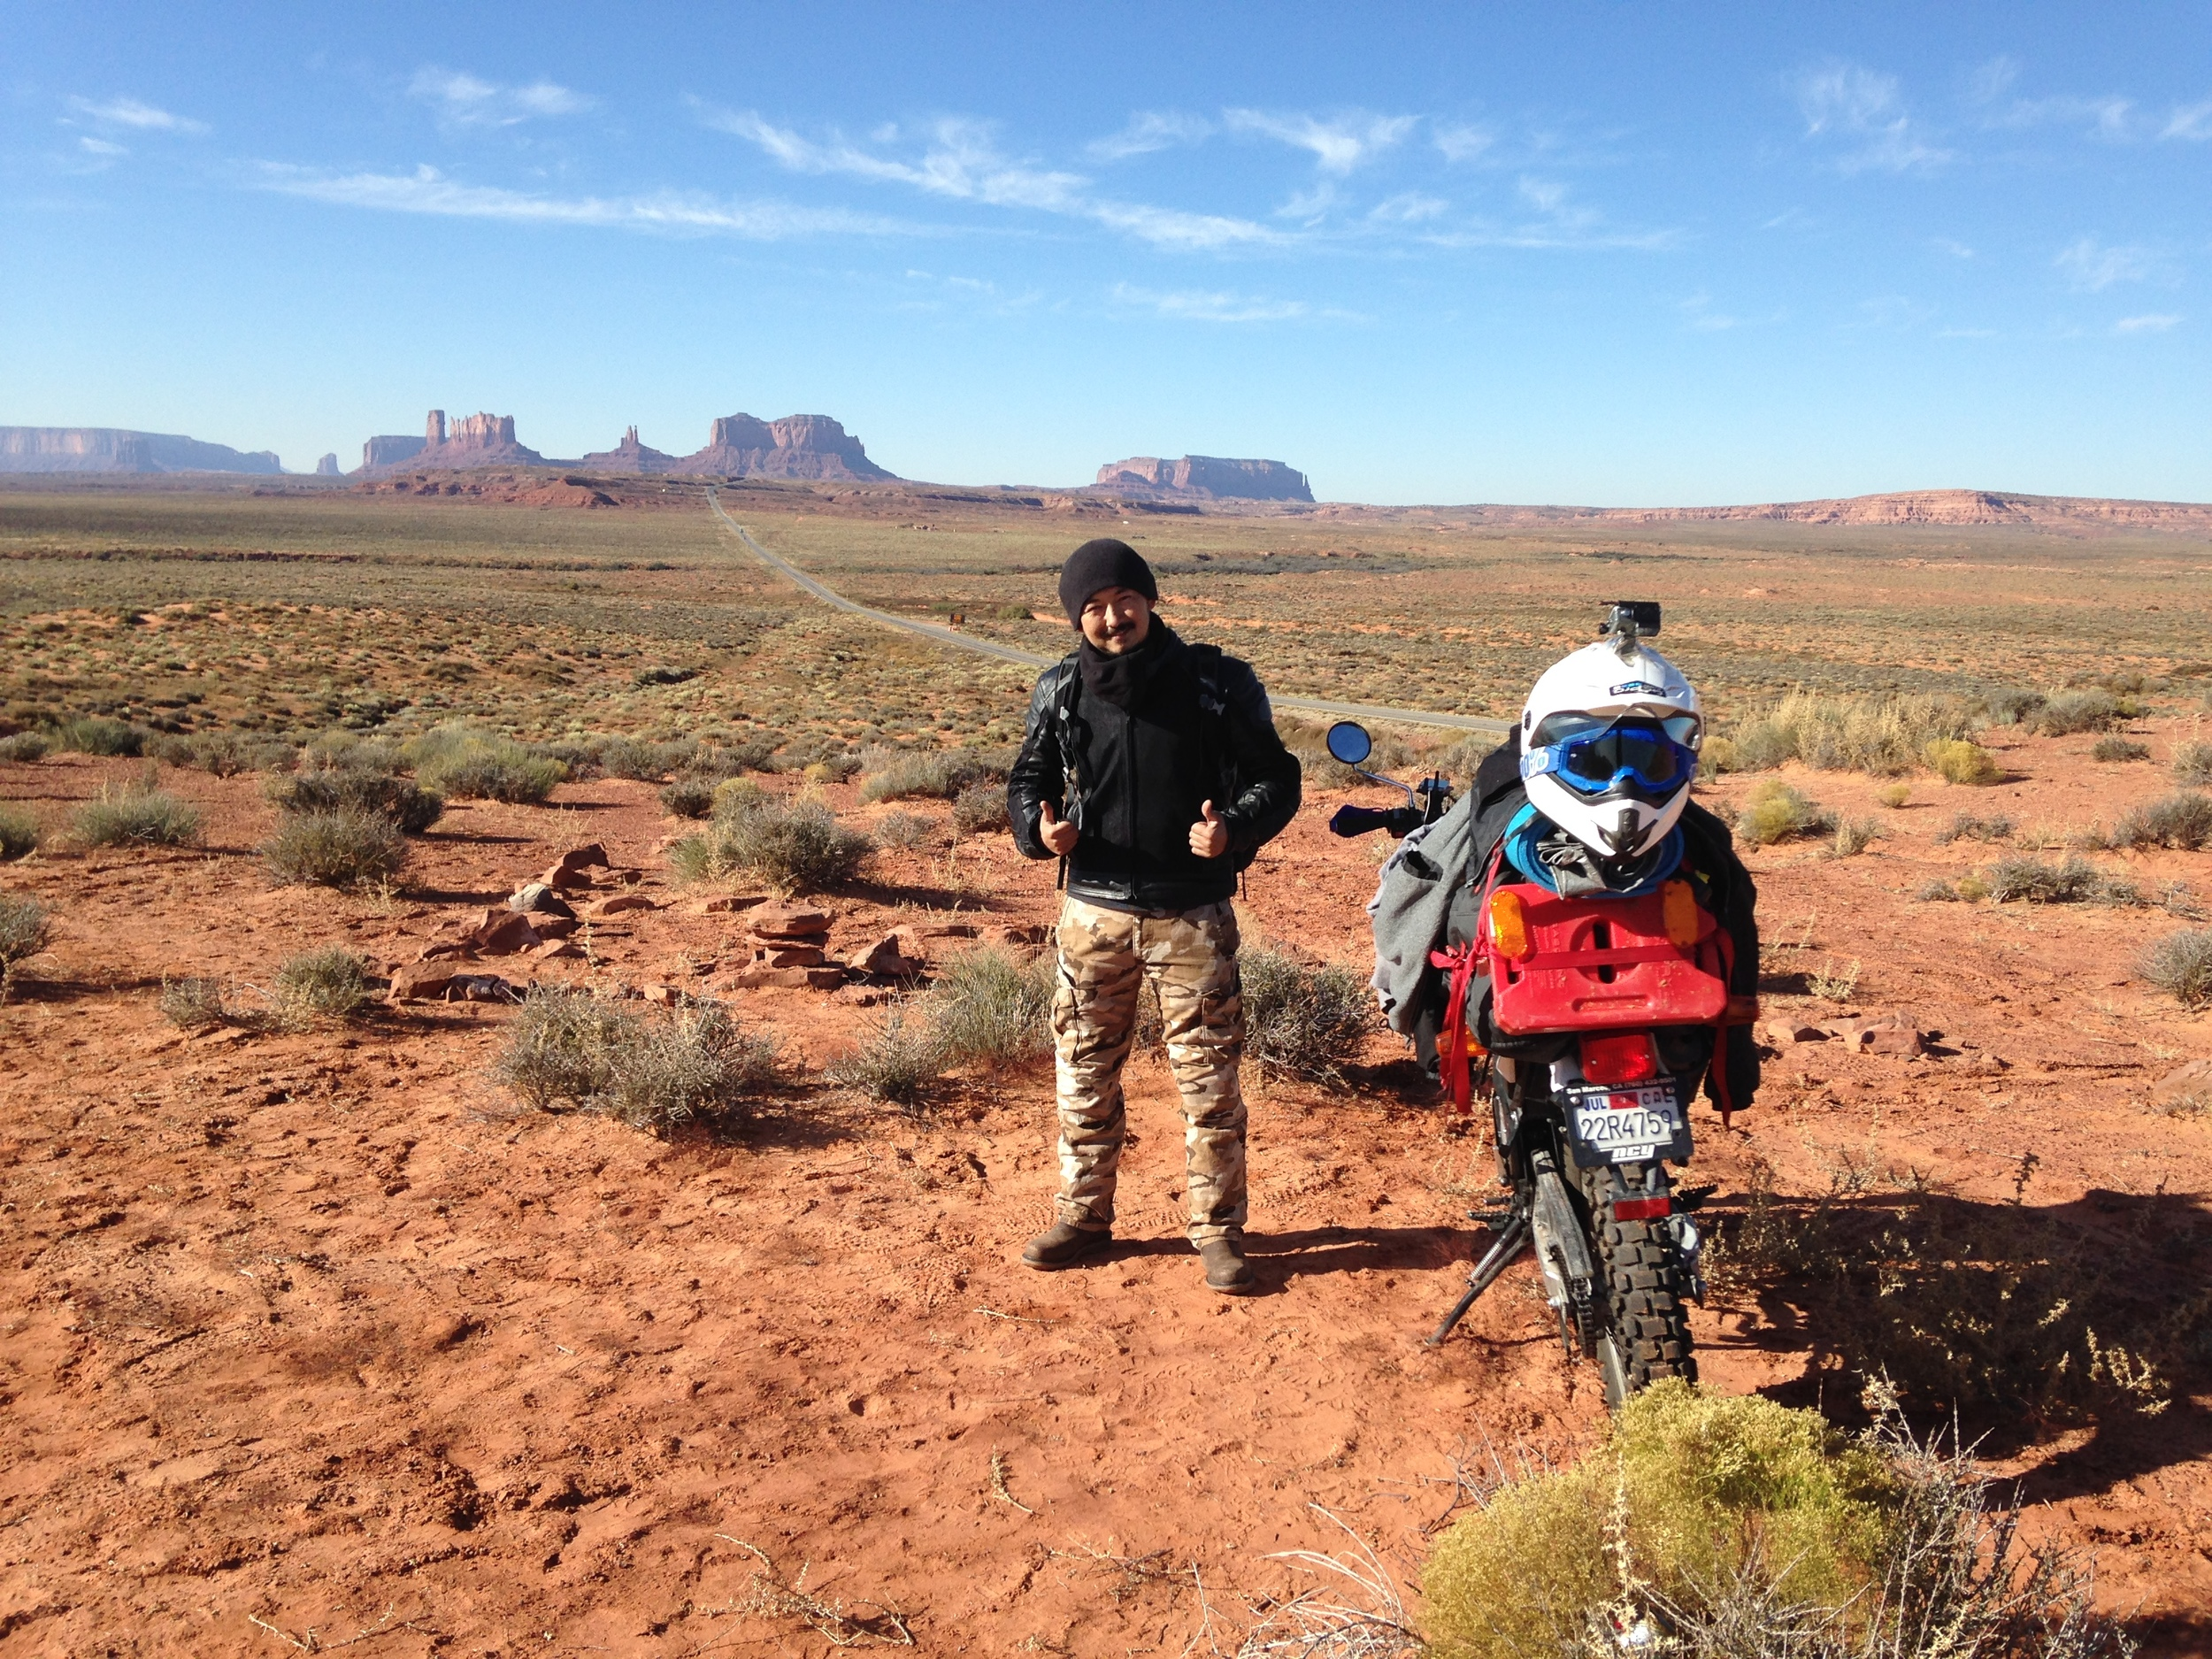 Airken before hitting the road in Monument Valley, Arizona